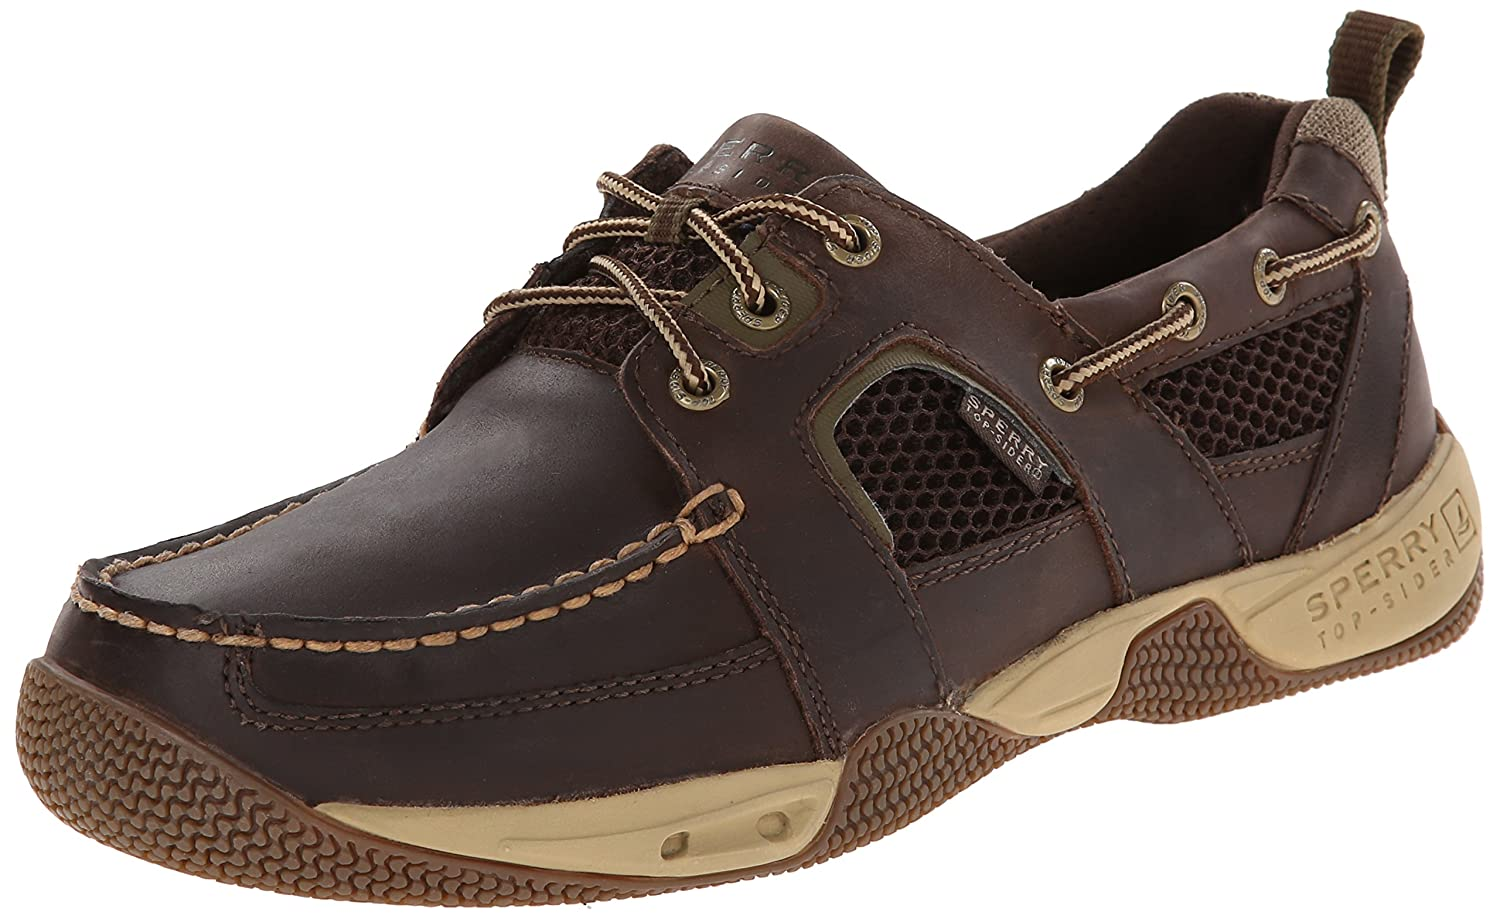 Sperry Men's Sea Kite Sport MOC Boat Shoes Sperry Top-Sider